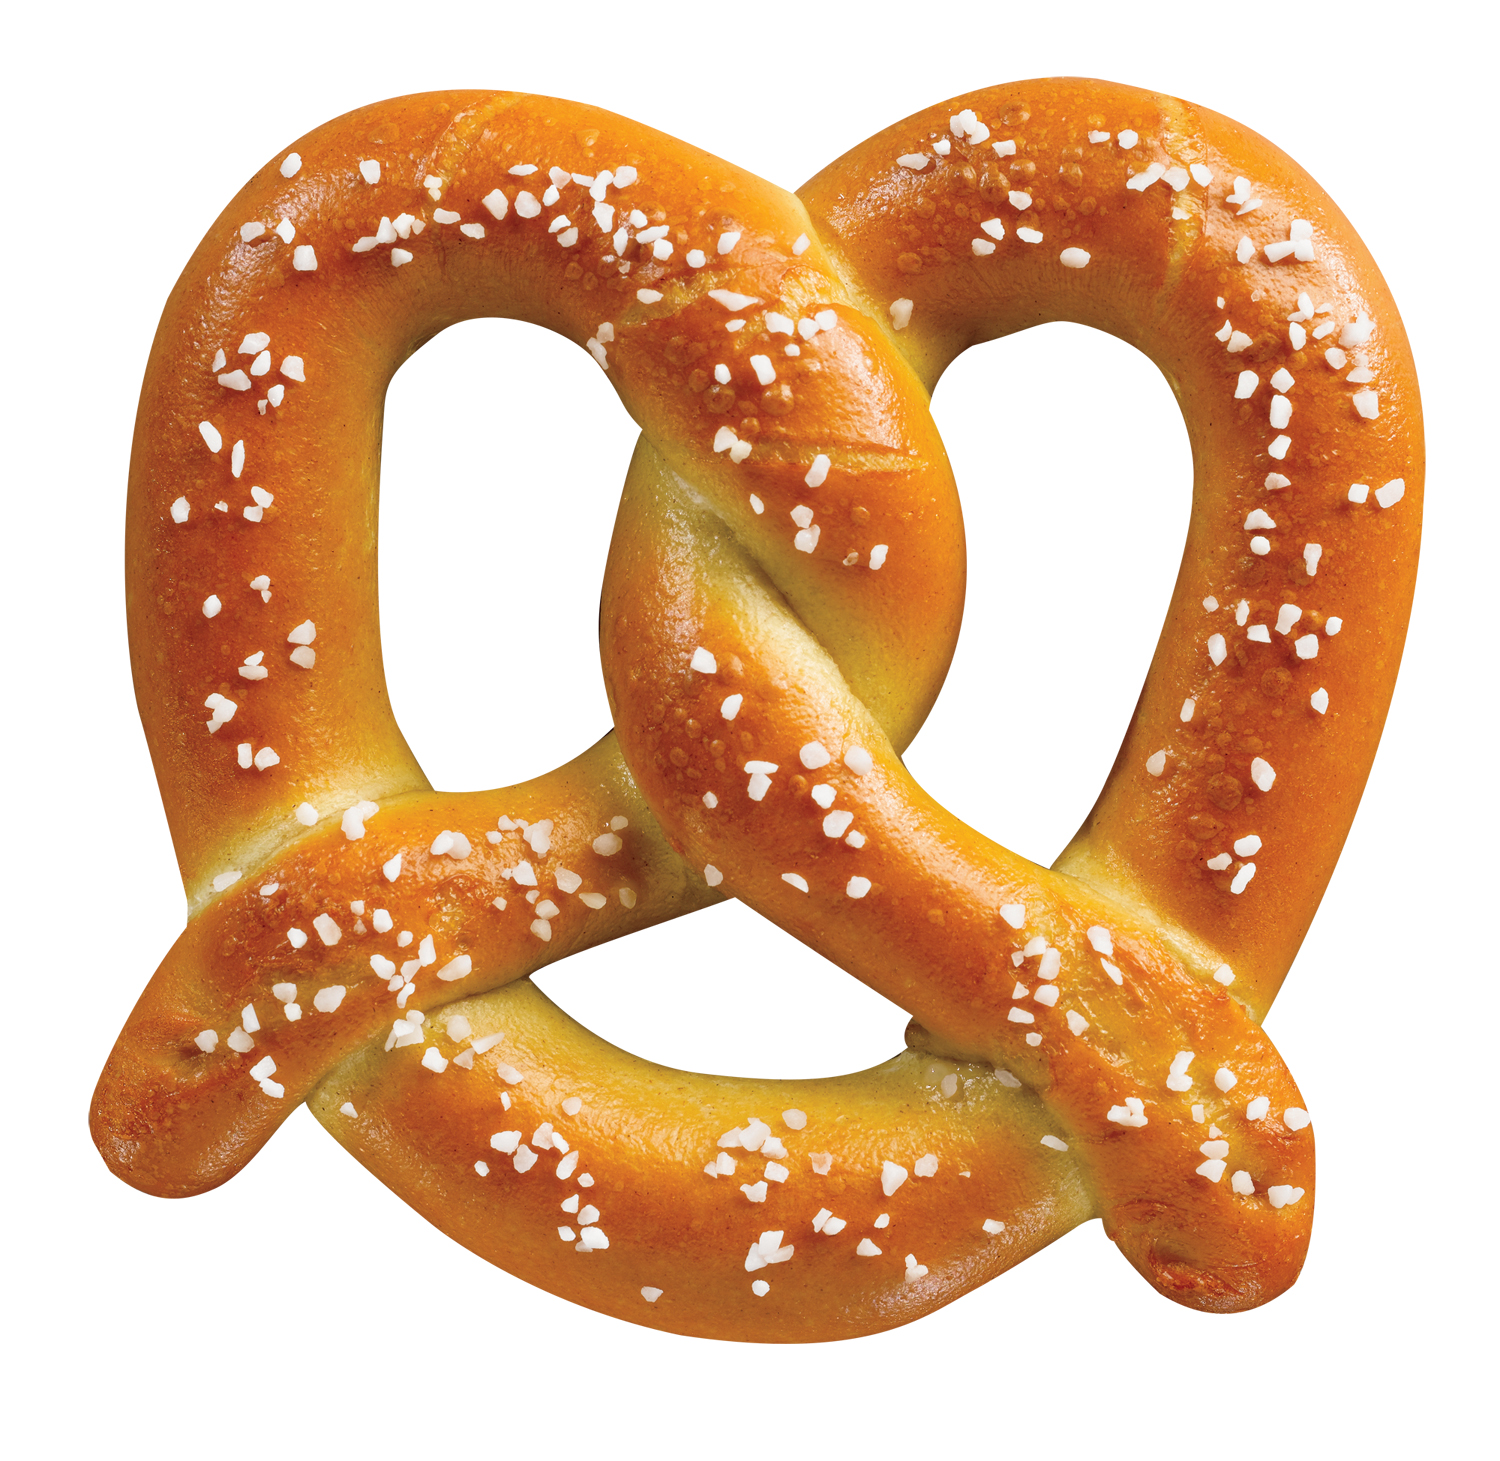 Soft Pretzels After All This Is A Big Game It Needs A Big Pretzel